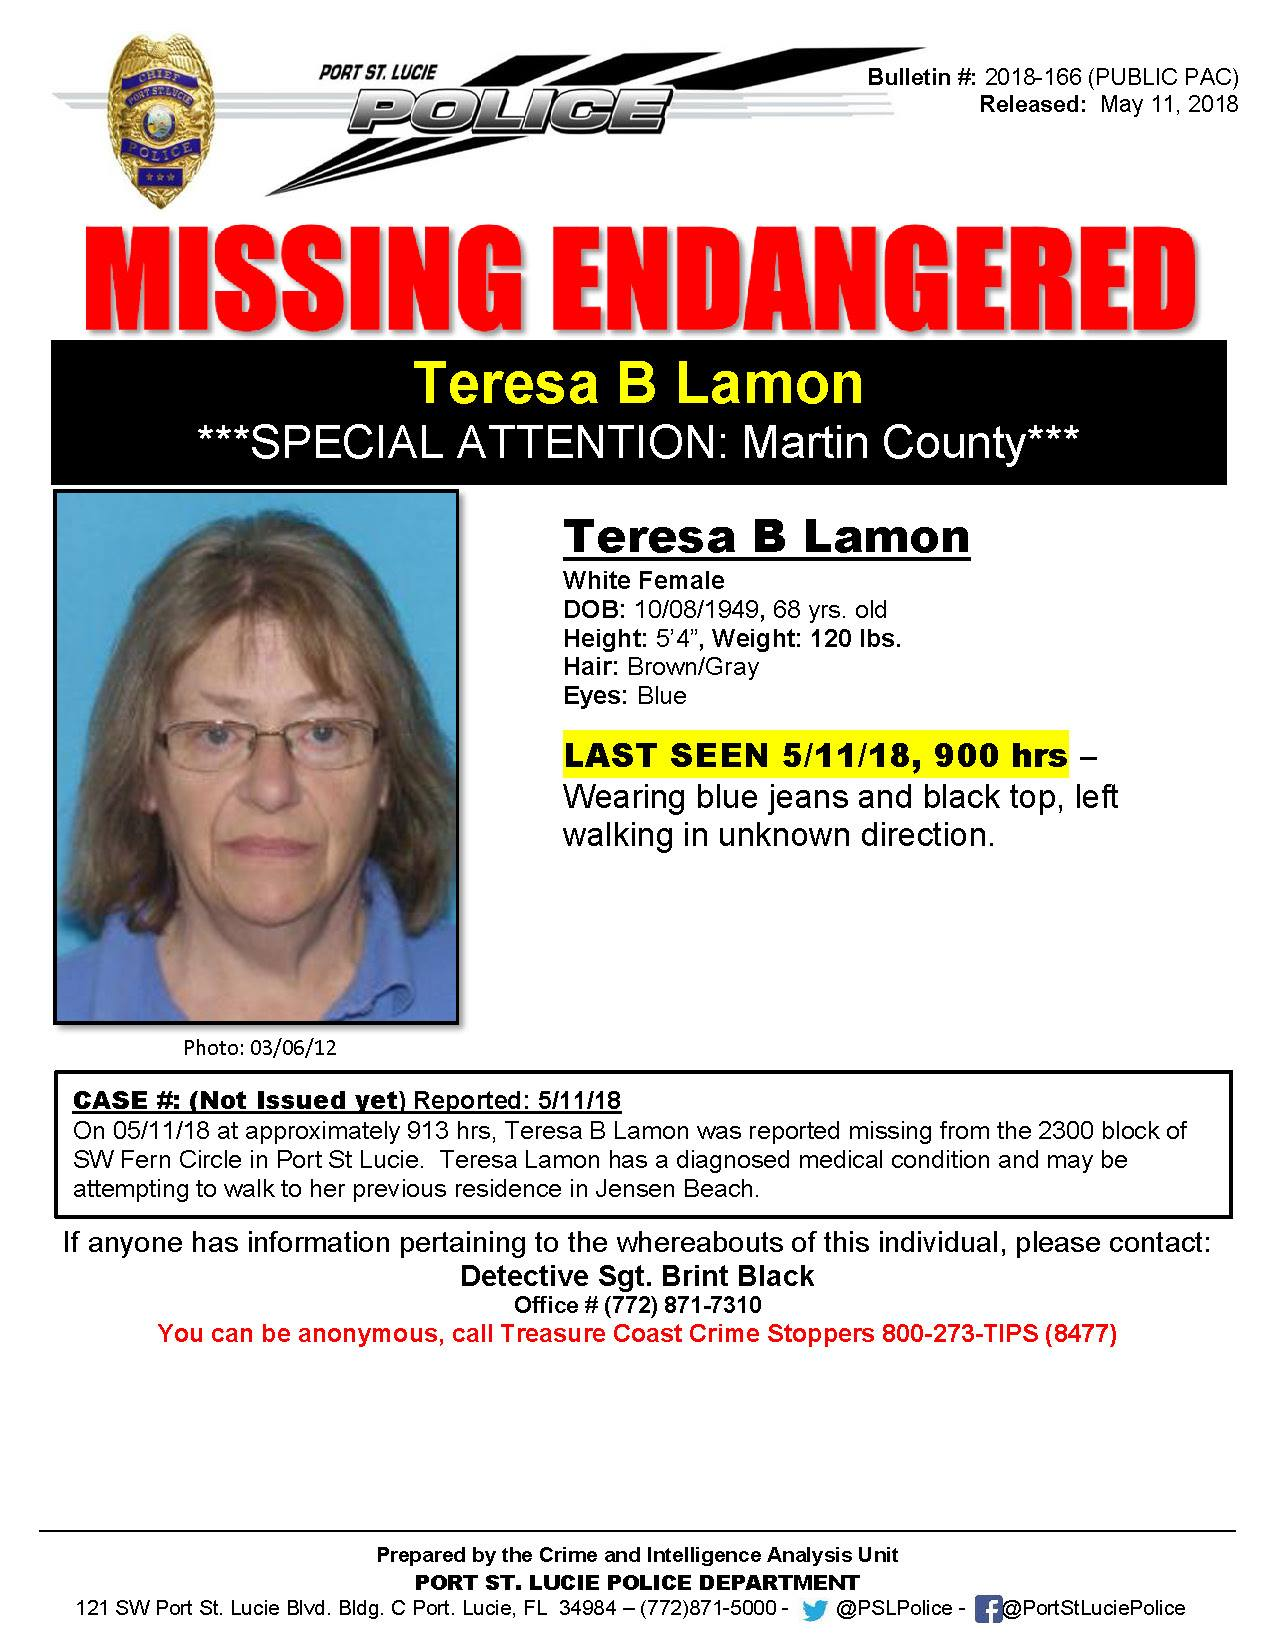 PSLPD searching for Missing and Endangered 70 year old Port